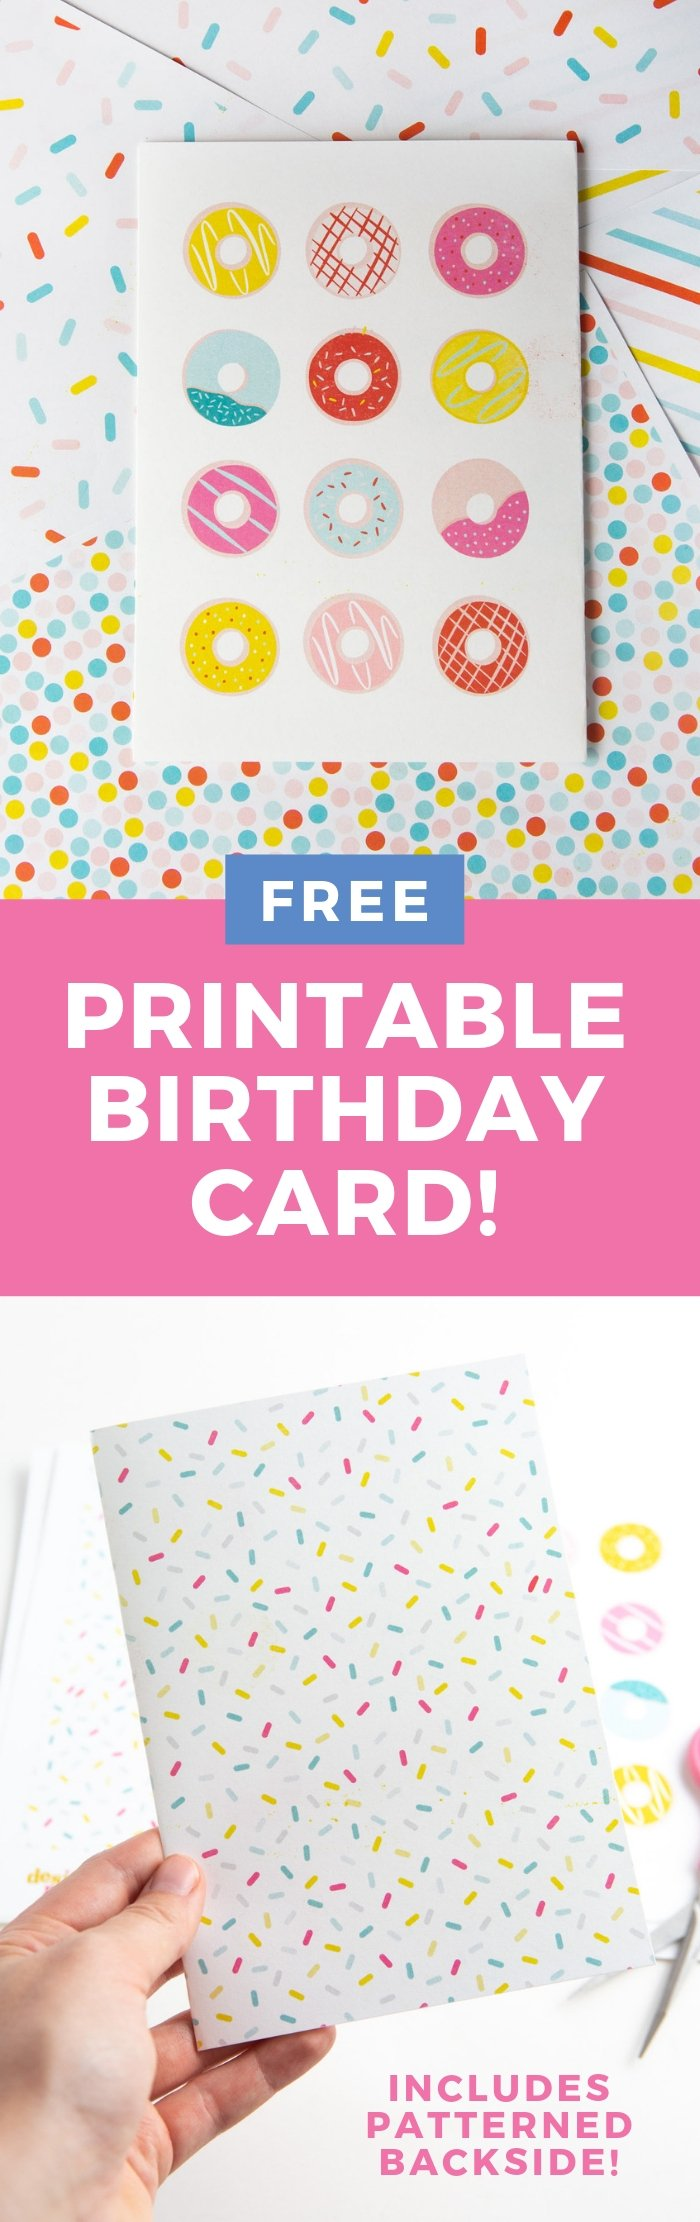 Attention donut lovers! This free #printable birthday card can be whipped up in 5 minutes and is the perfect homemade donut for any occasion!